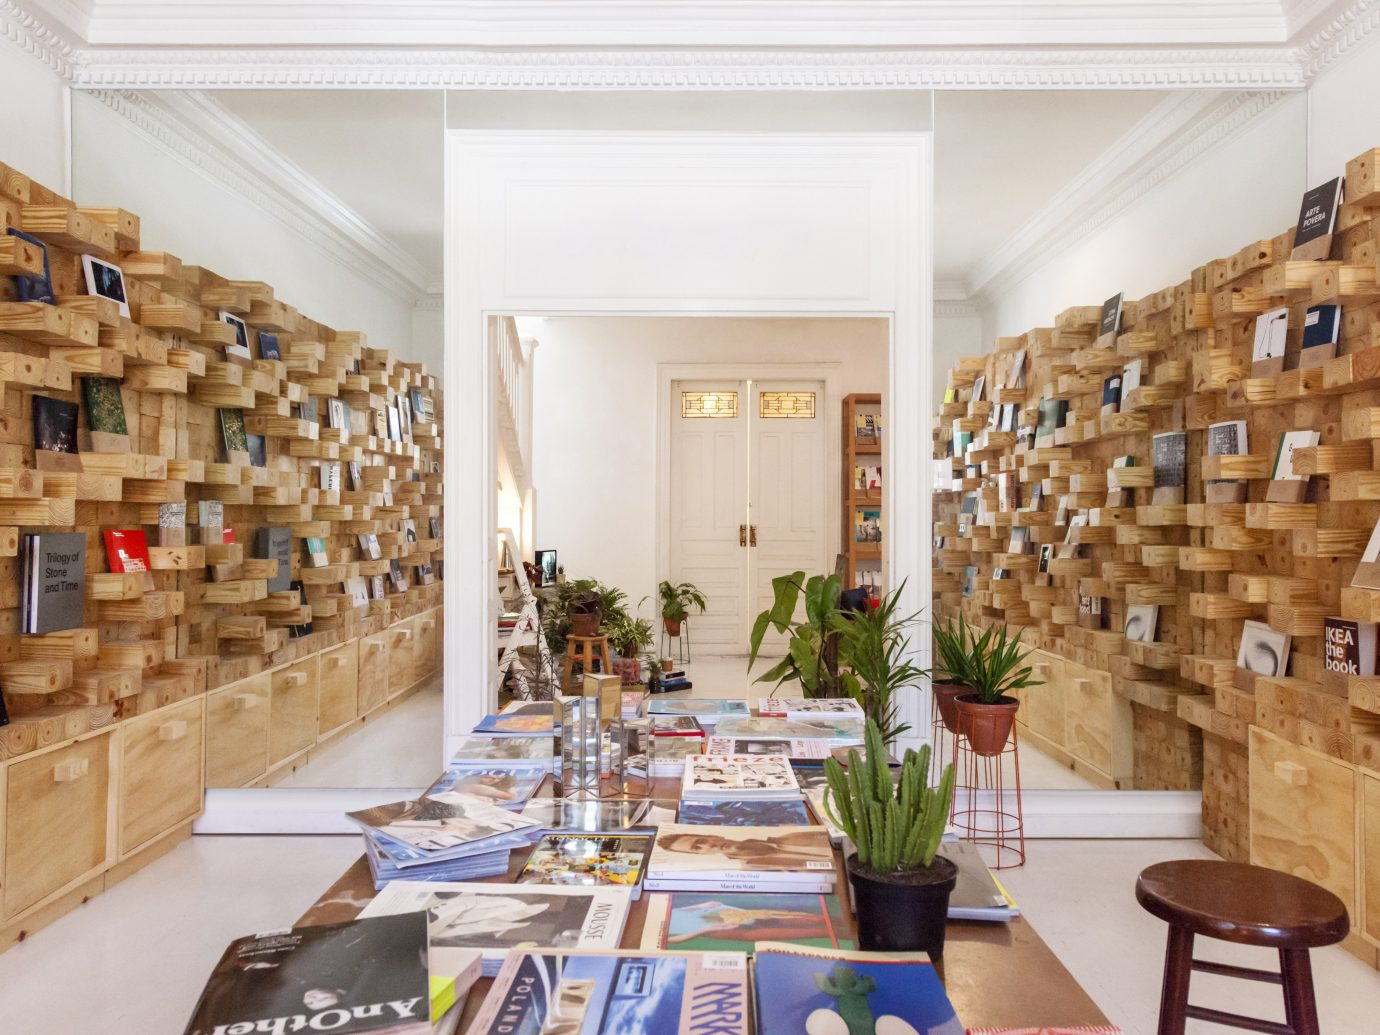 Interior of Casa Bosques in Mexico City with a table full of books and shelves on either sides of the walls